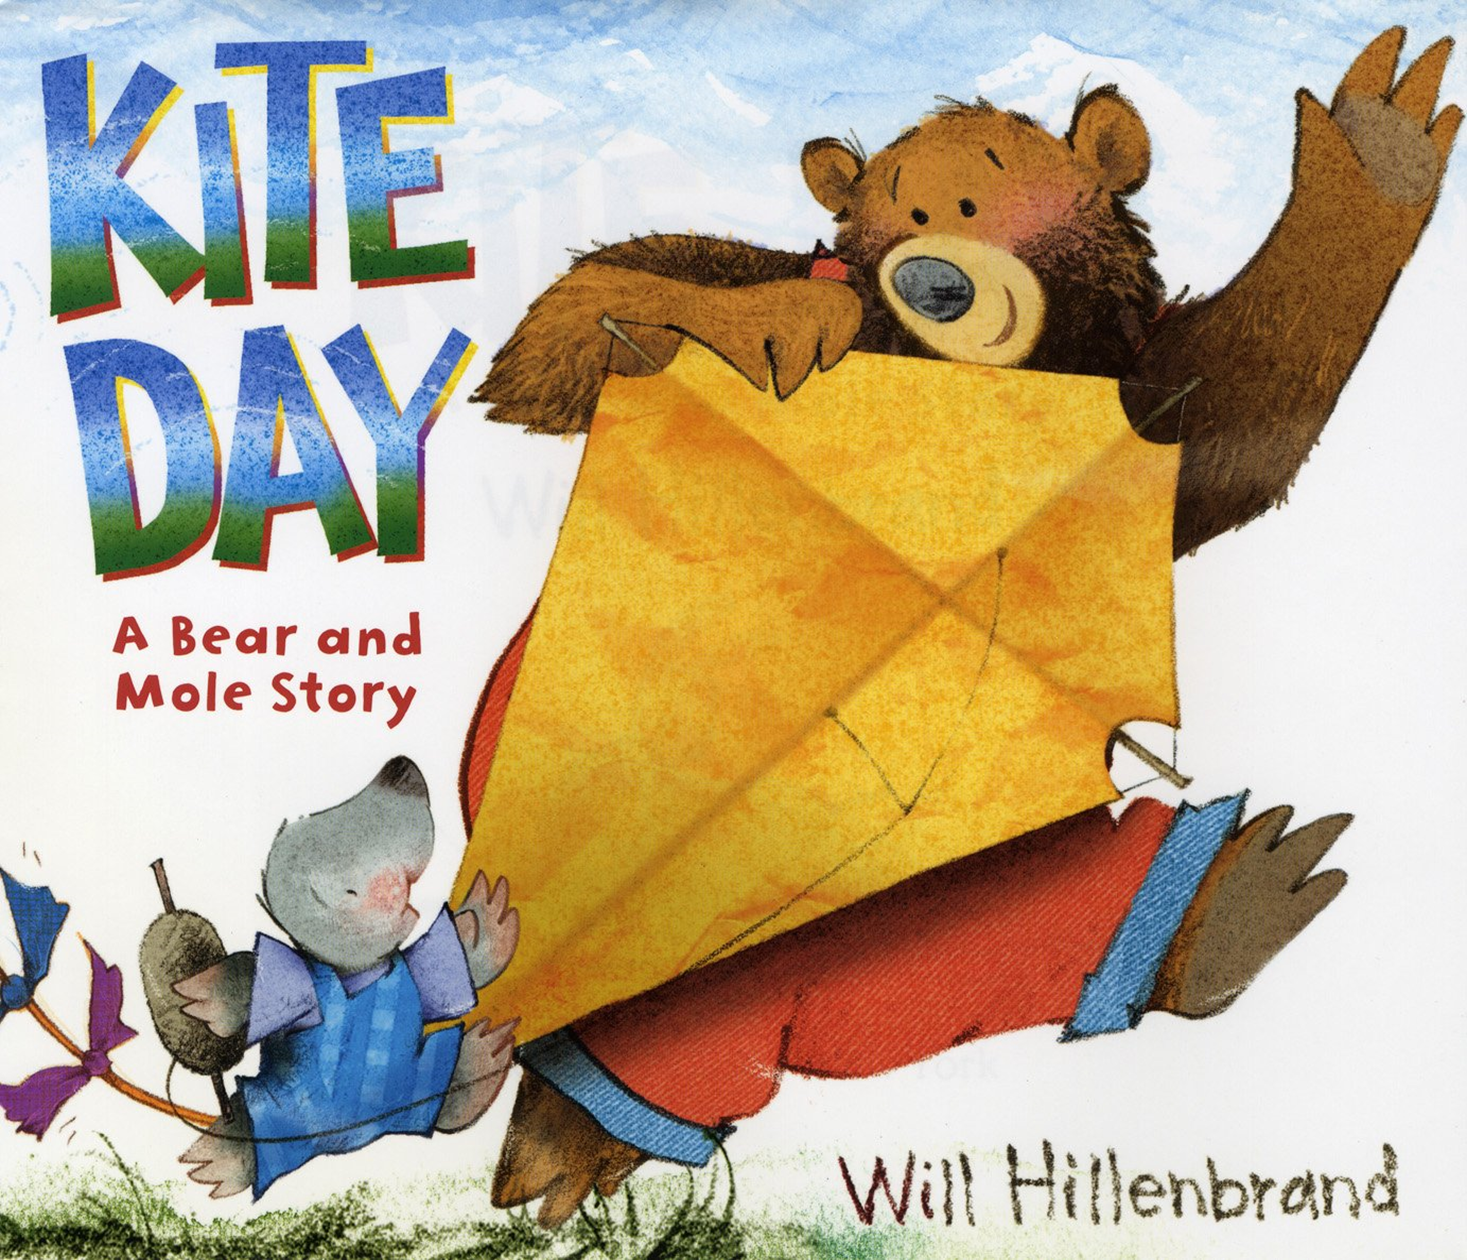 celebrate-picture-books-picture-book-review-kite-day-a-bear-and-mole-story-cover